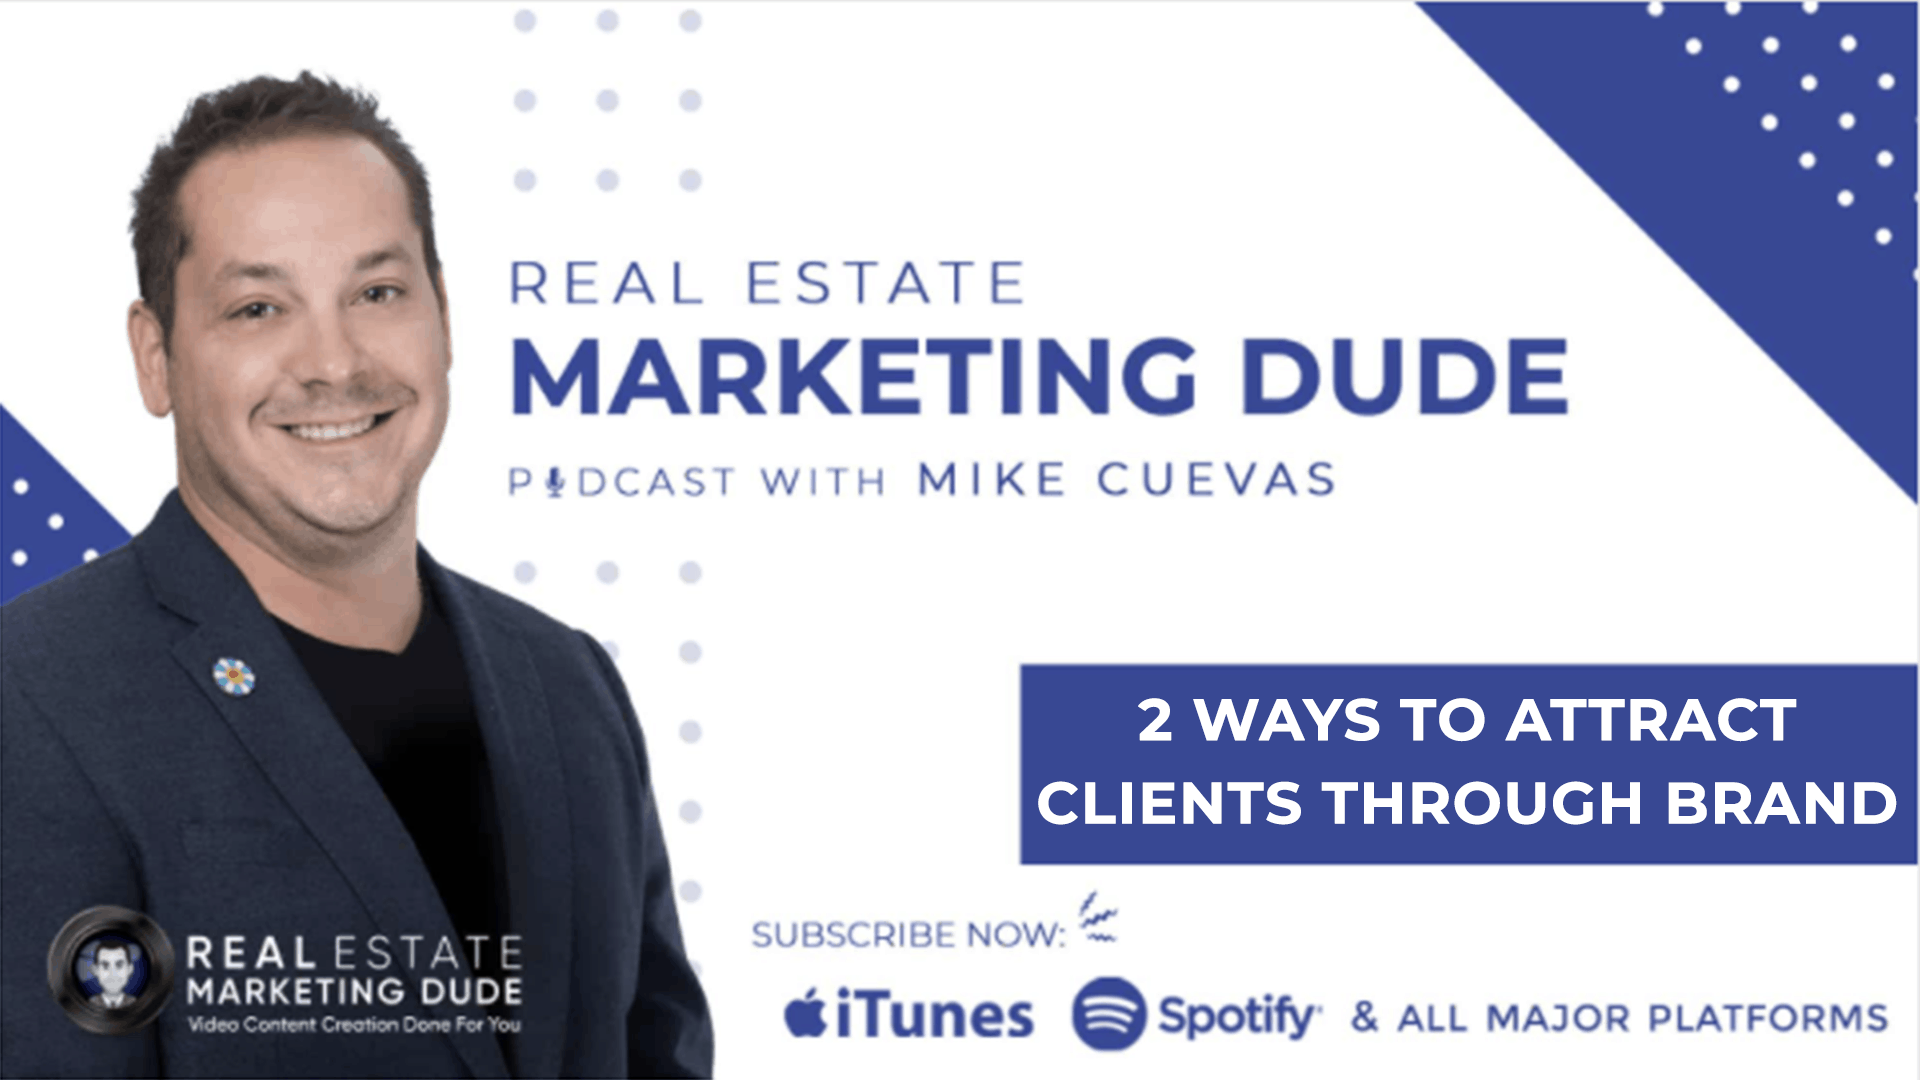 real estate marketing dude podcast two ways to attract clients through brand